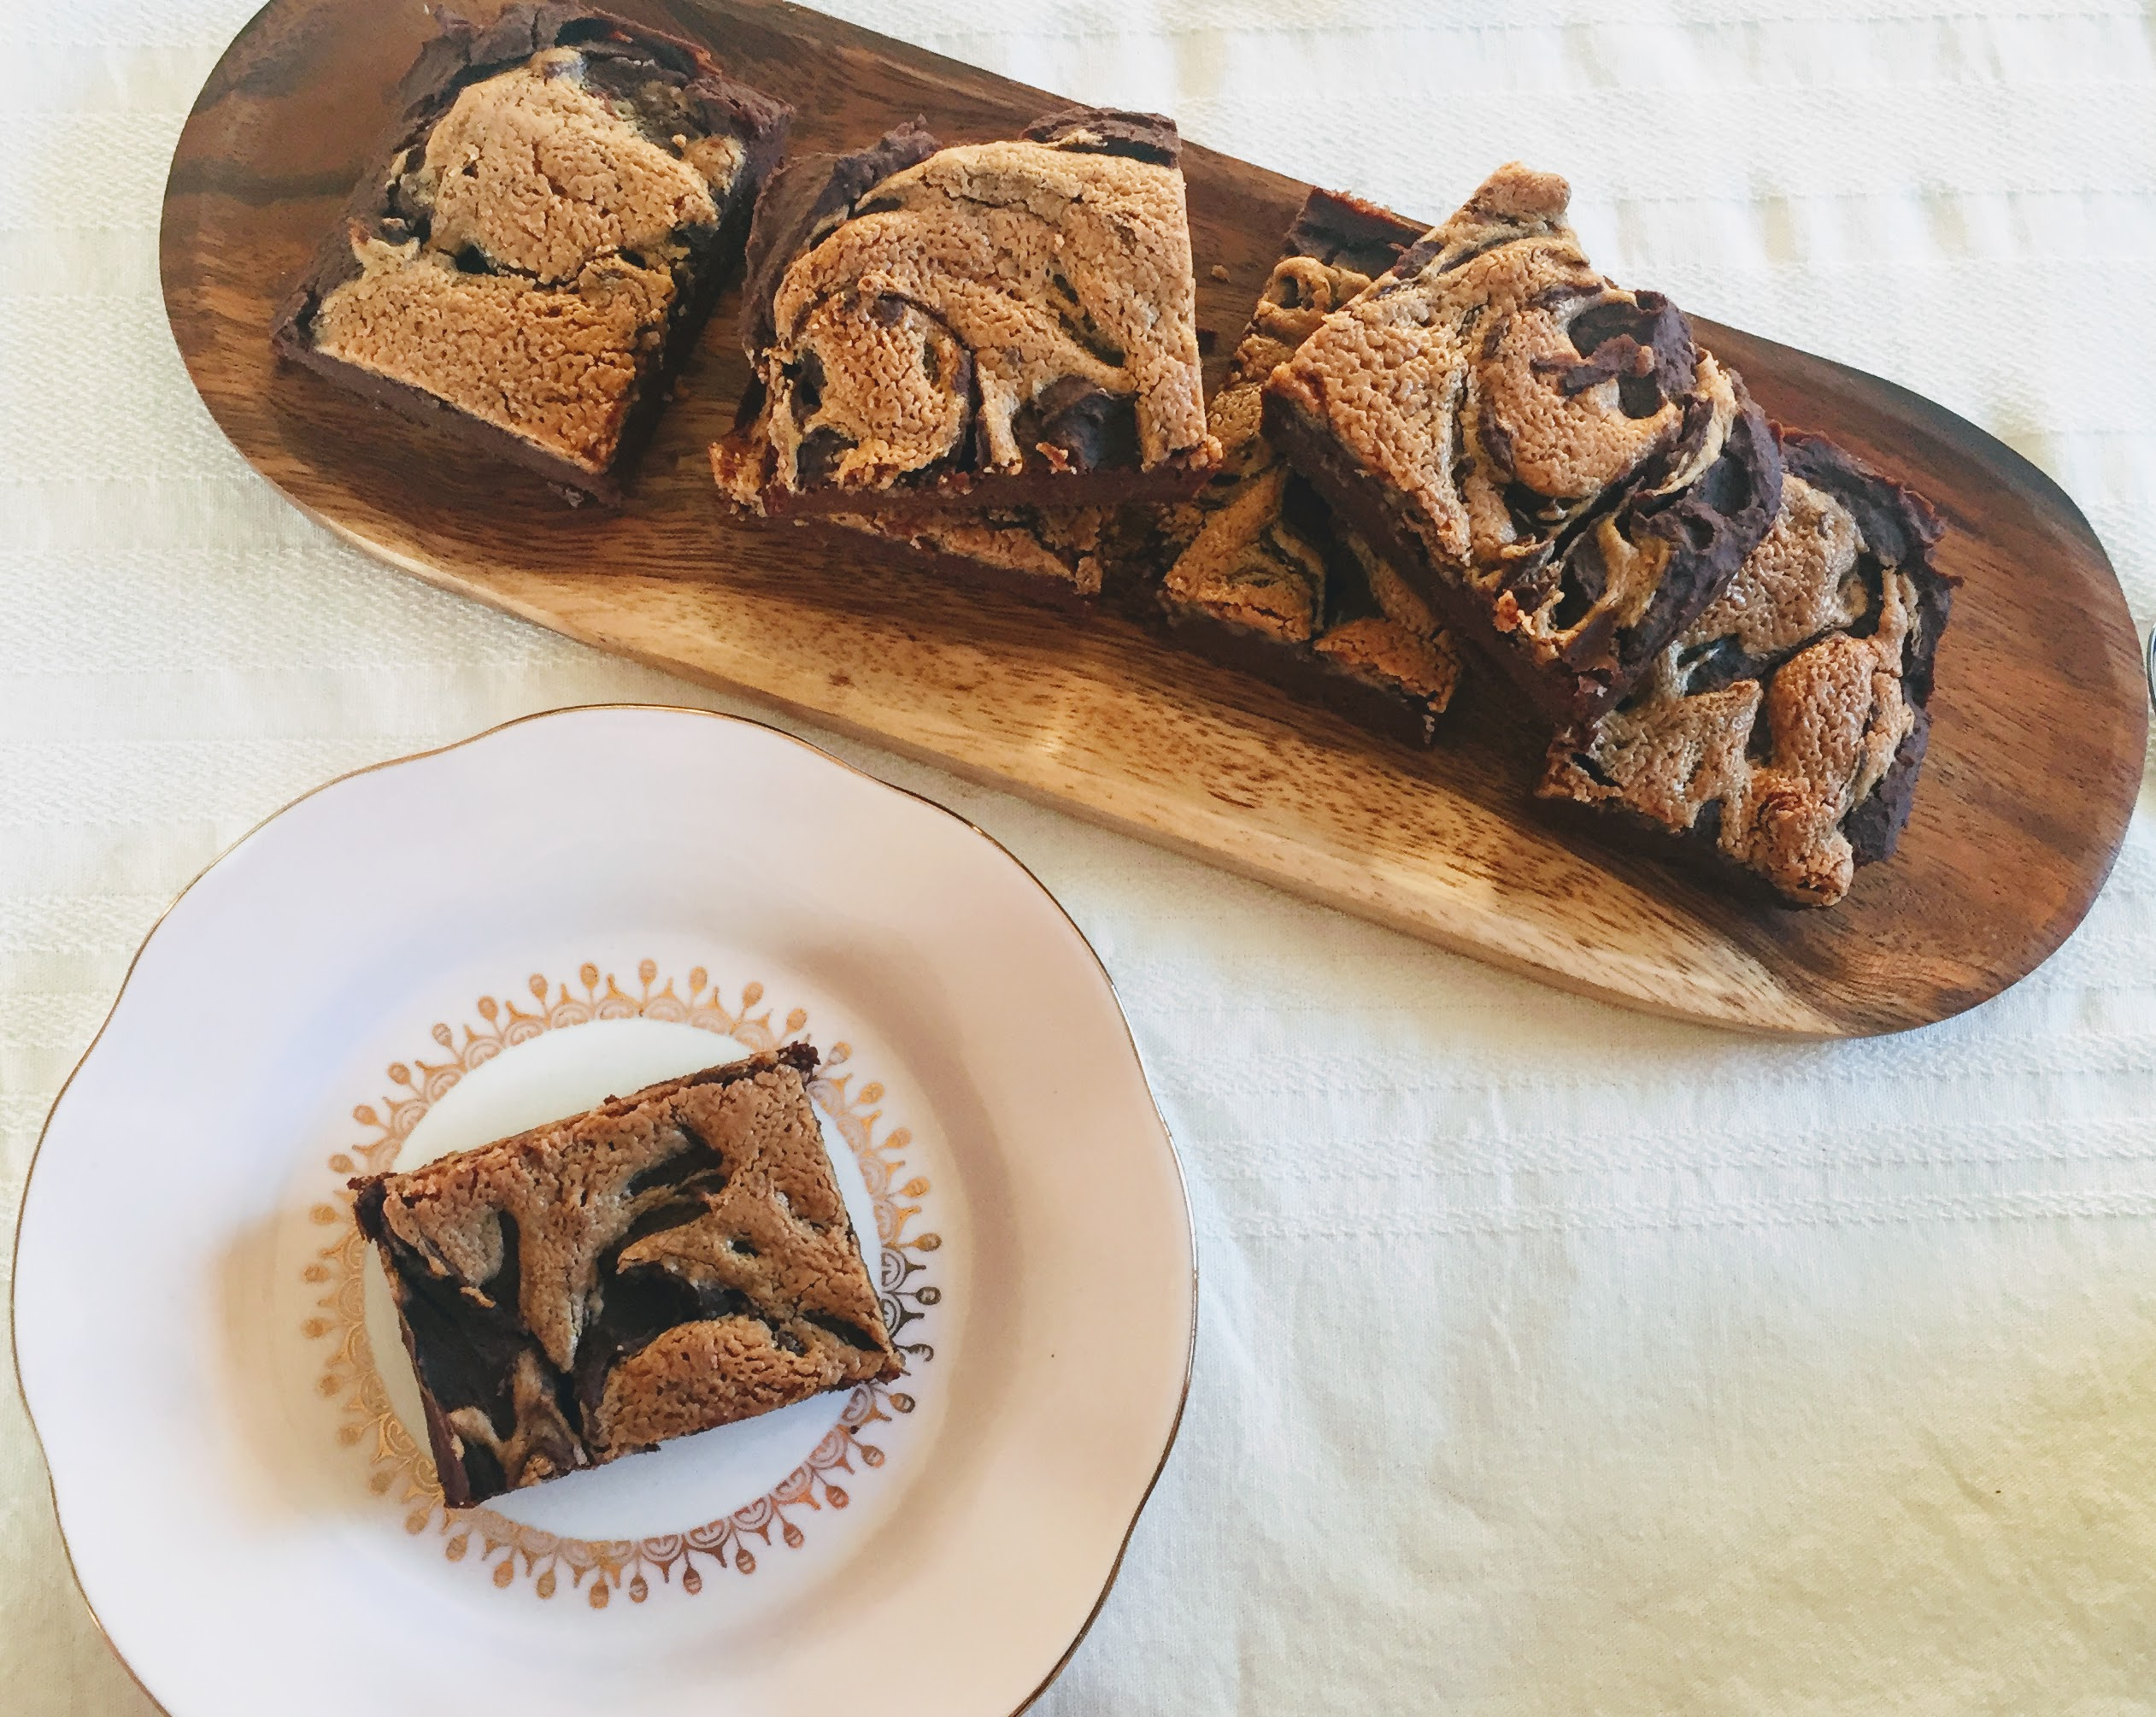 An aerial view of the peanut butter, banana and chickpea brownies. One is on a plate and the others are on a wooden board. You can see the golden peanut butter swirl topping contrasted with the deep, dark chocolate of the brownies.